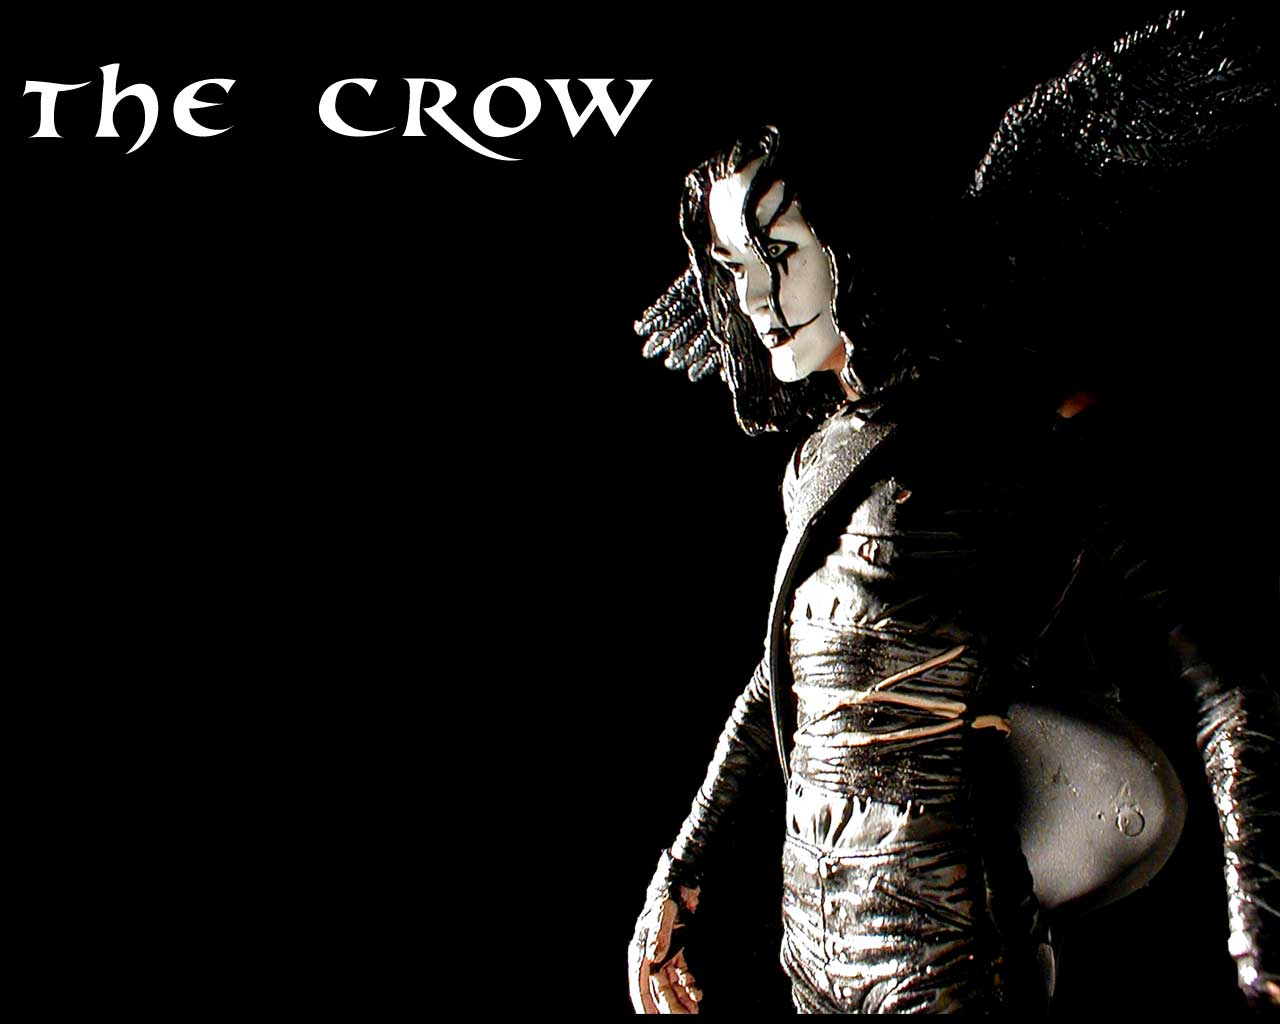 The Crow Quotes Wallpaper | www.pixshark.com - Images ...